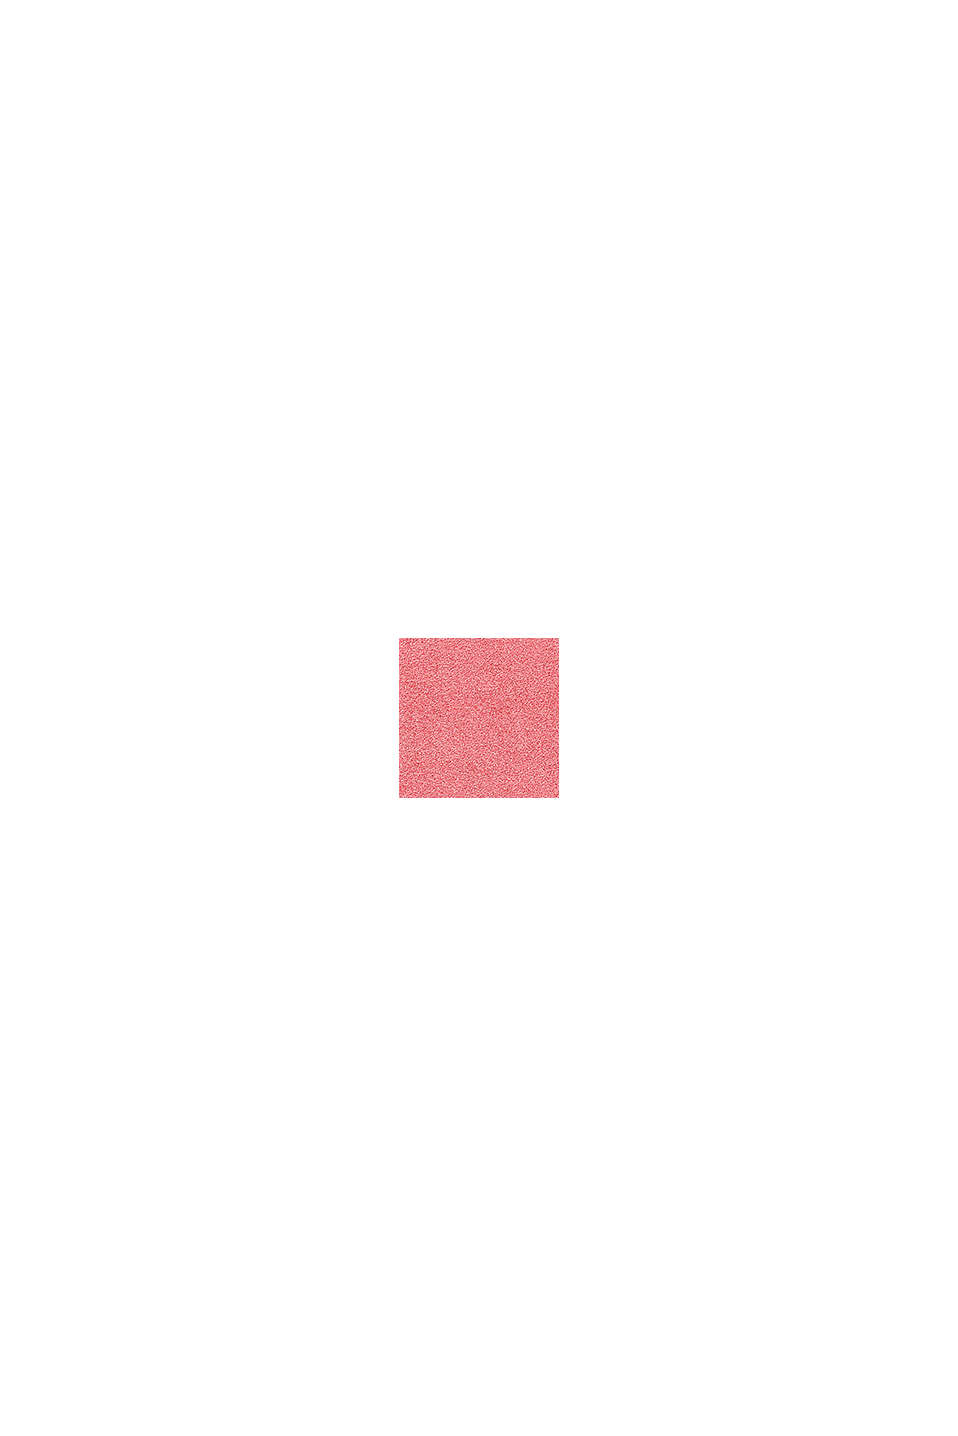 Terrycloth bath mat made of 100% cotton, CORAL, swatch